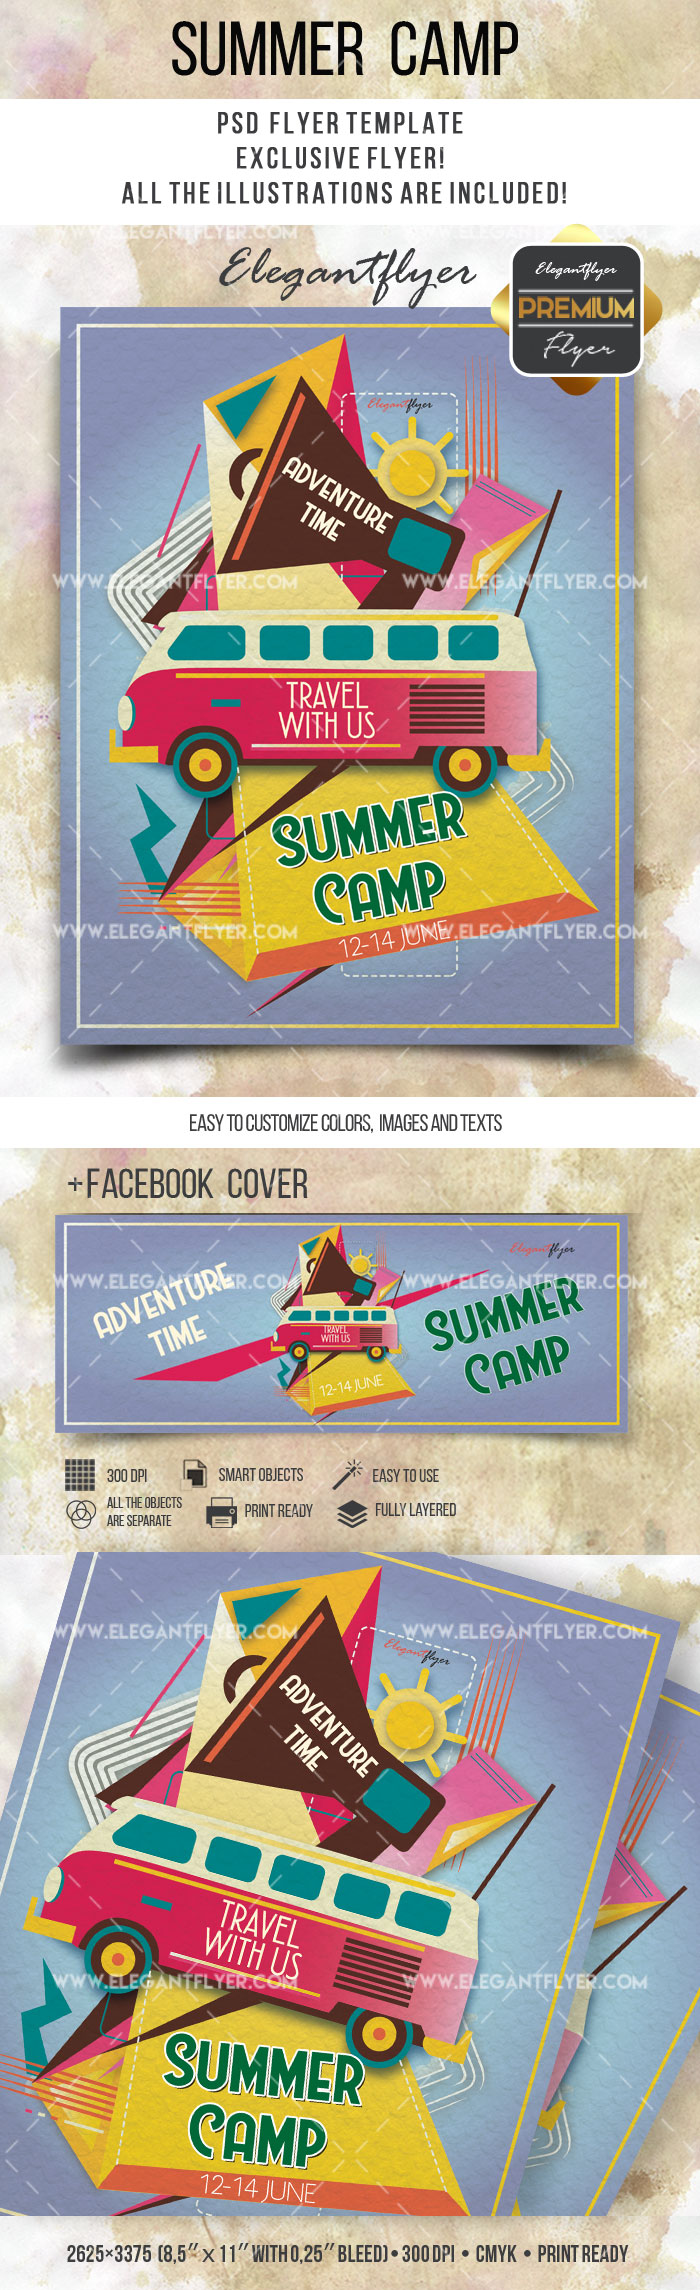 Travel with us Summer Camp PSD Template